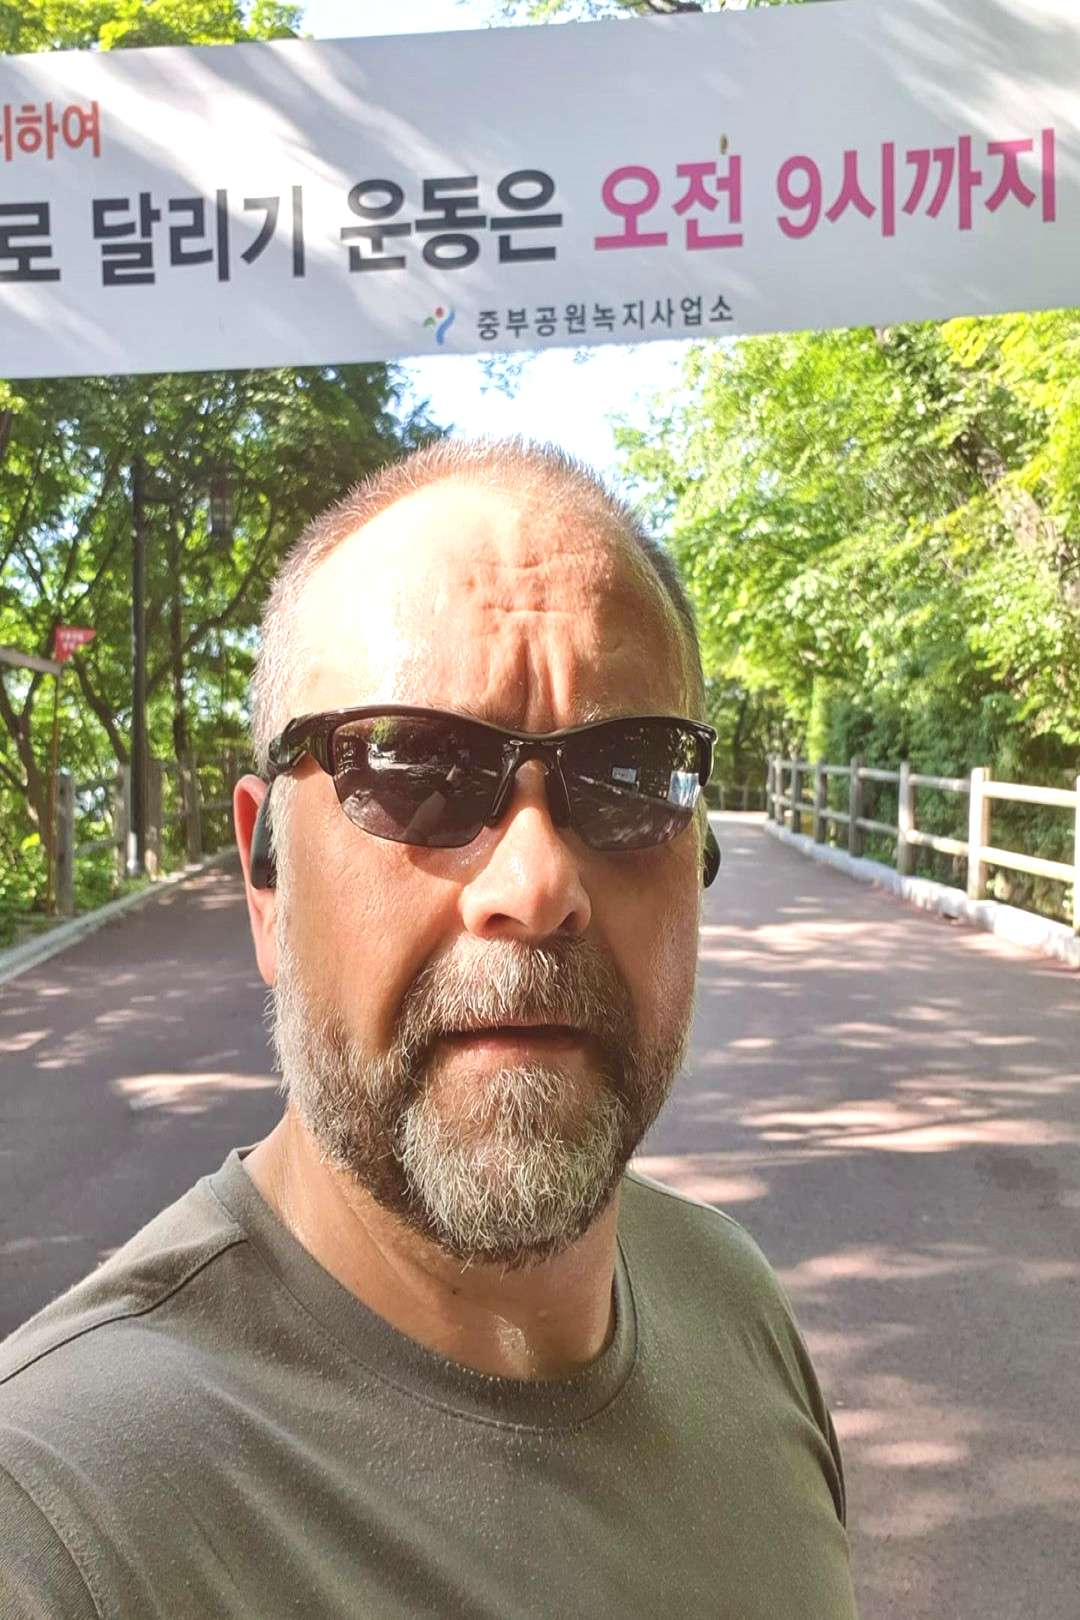 on June 01 2020 1 person beard sunglasses and outdoor